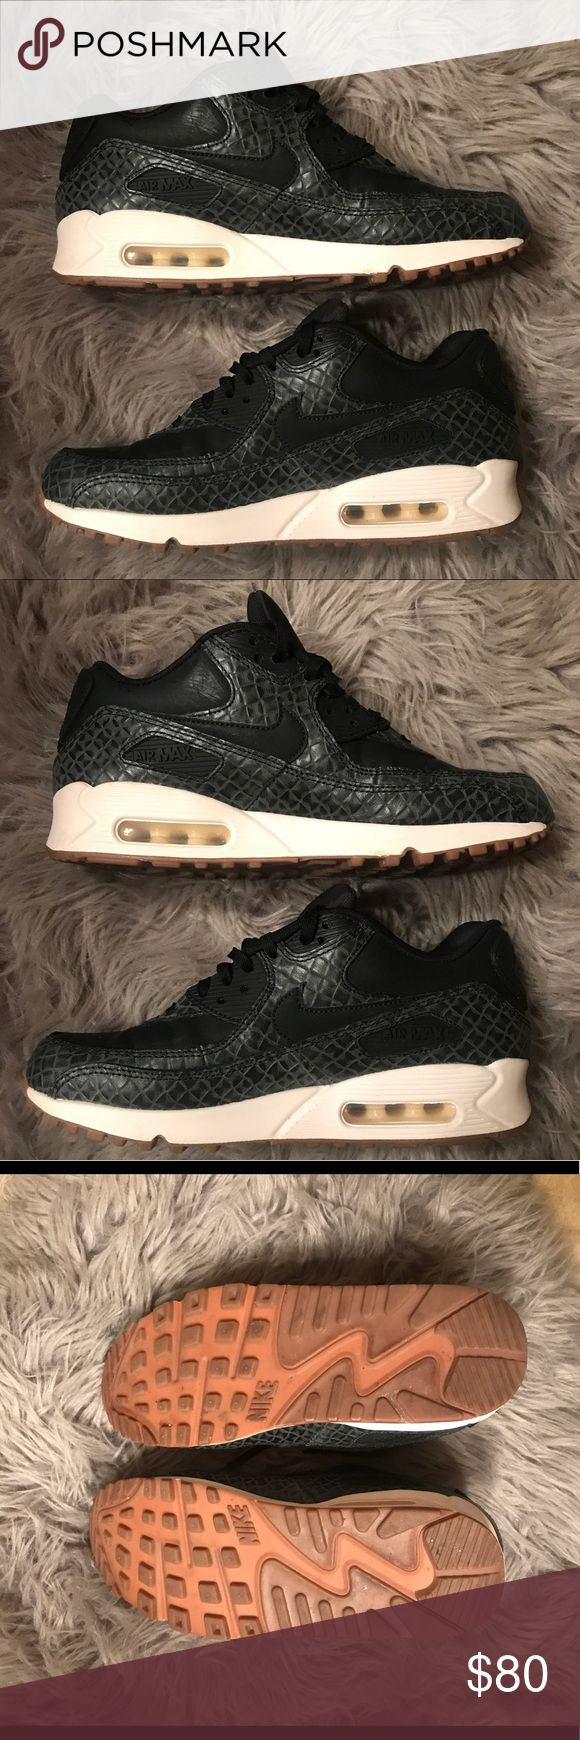 Nike Air Max 90 Nike Air Max 90 Leather  Worn for one day, great condition Size 9  I do not have the box Nike Shoes Athletic Shoes